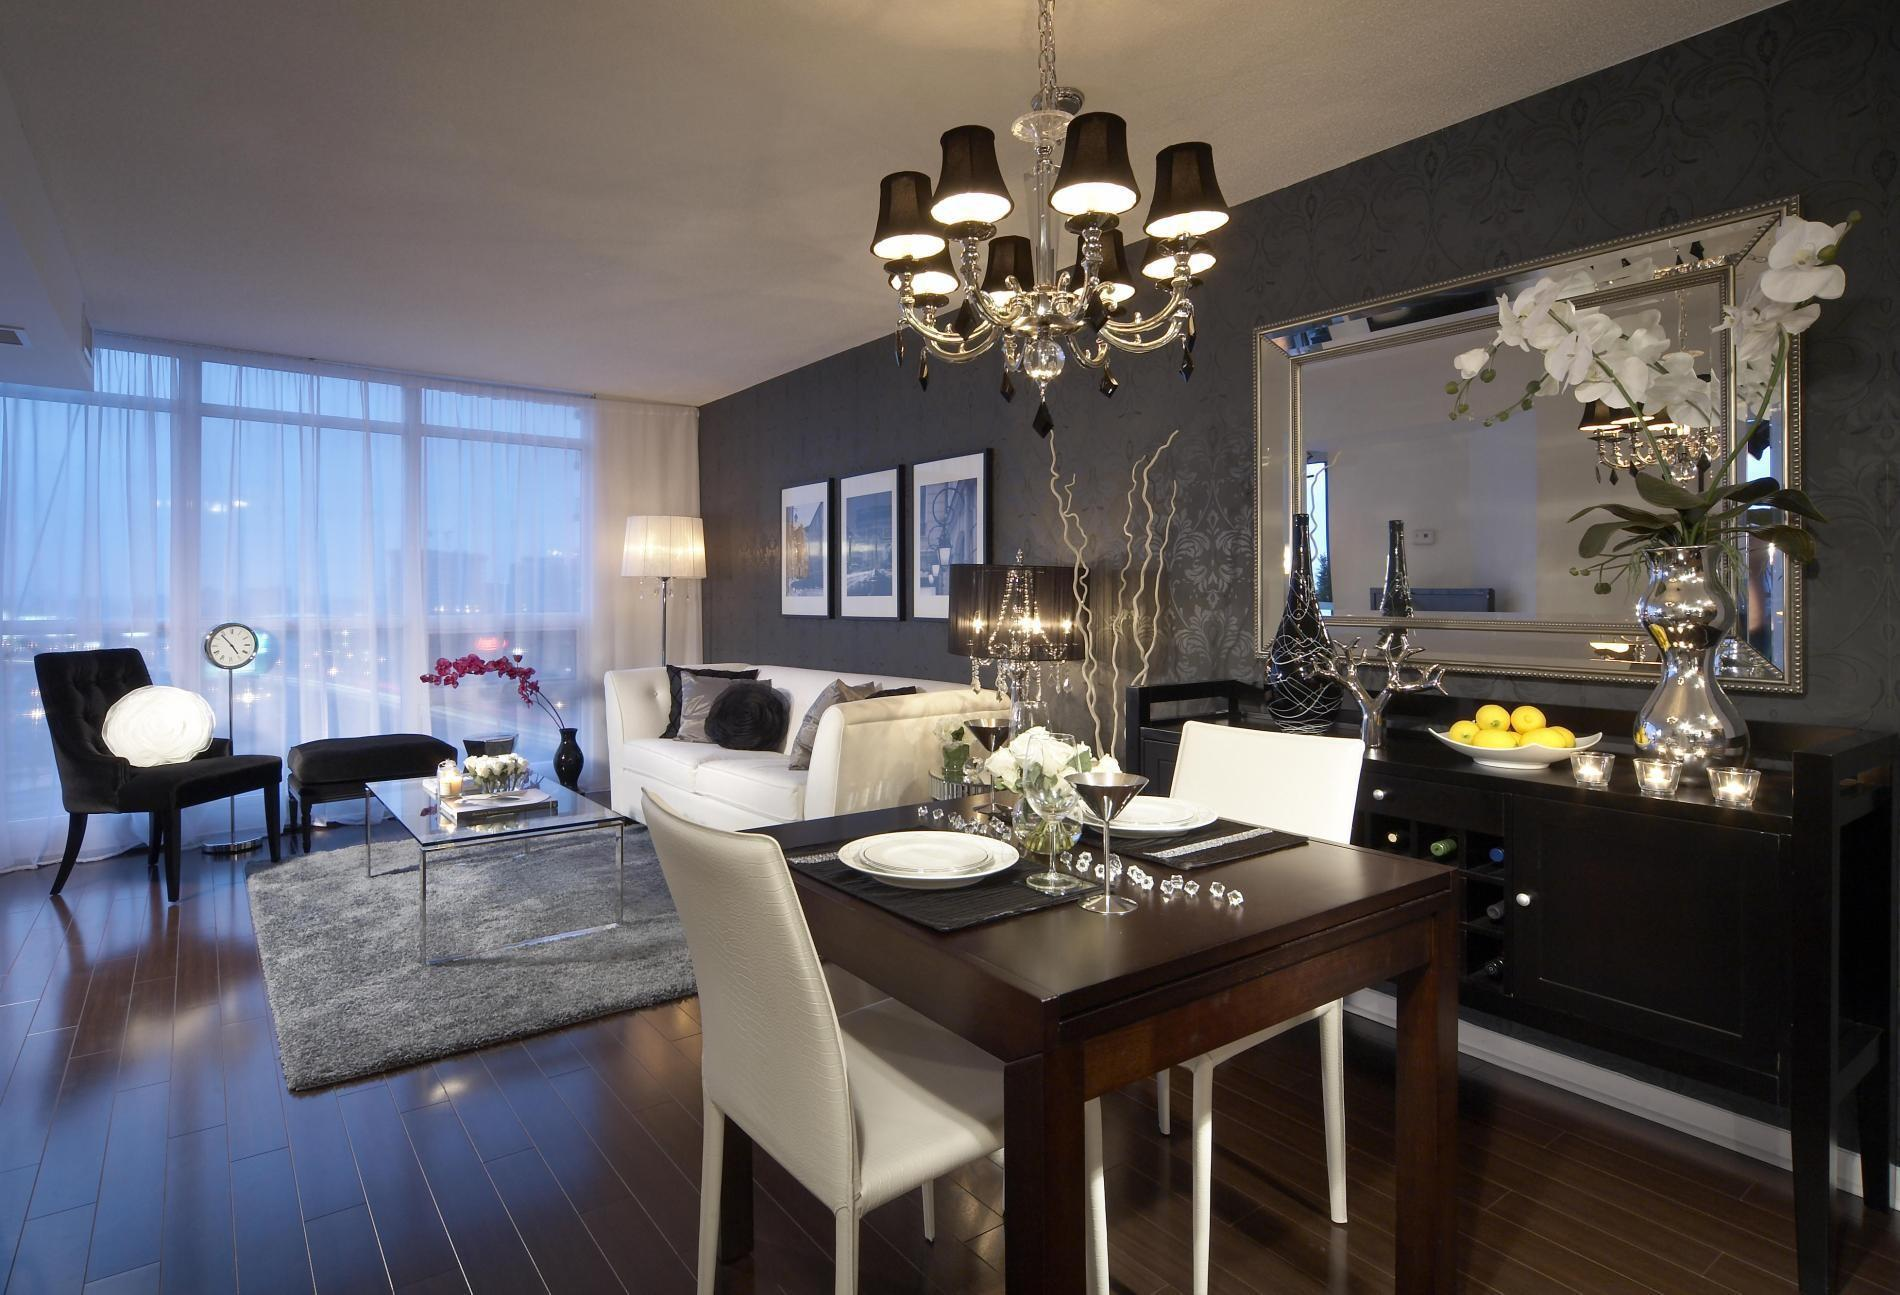 Apartments Condos Design Projects White